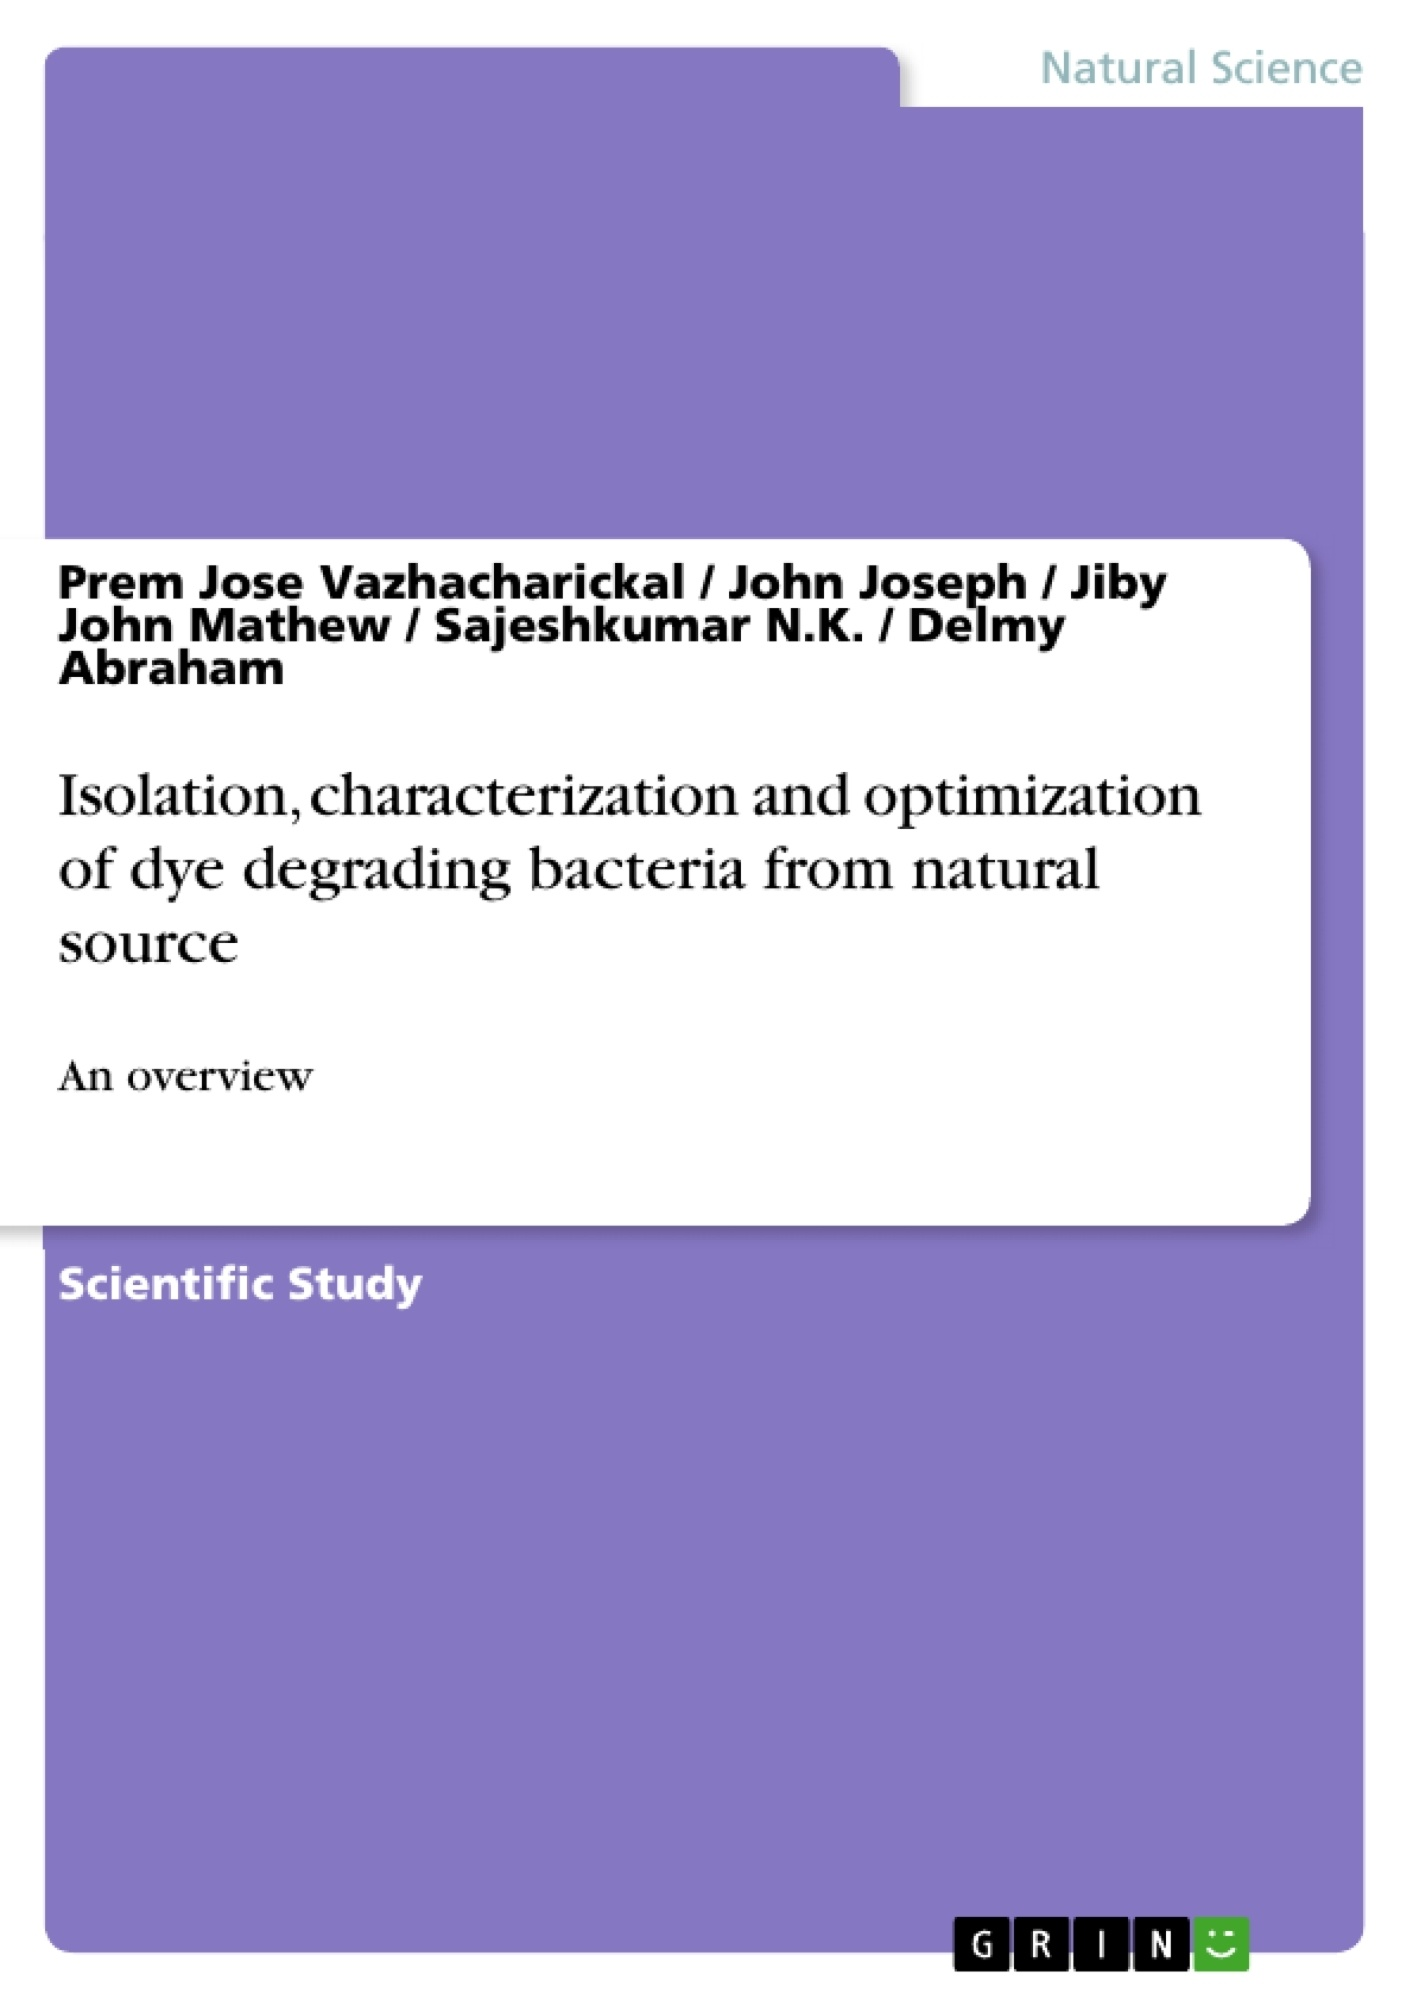 Title: Isolation, characterization and optimization of dye degrading bacteria from natural source